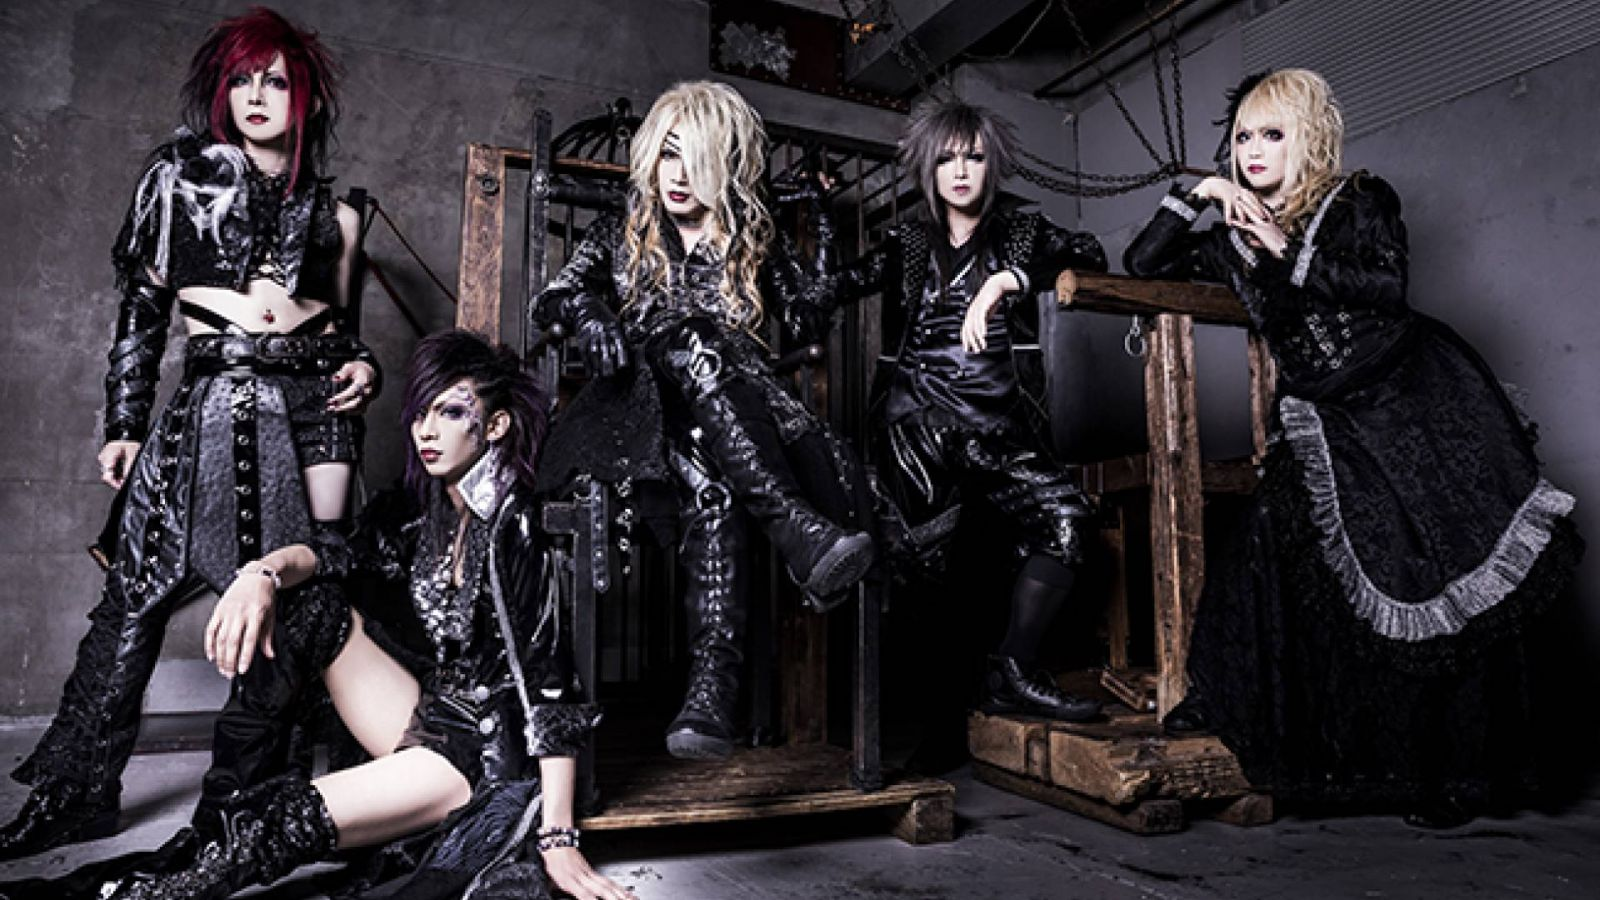 Entrevista con Scarlet Valse © Starwave Records. Provided by Royal Stage